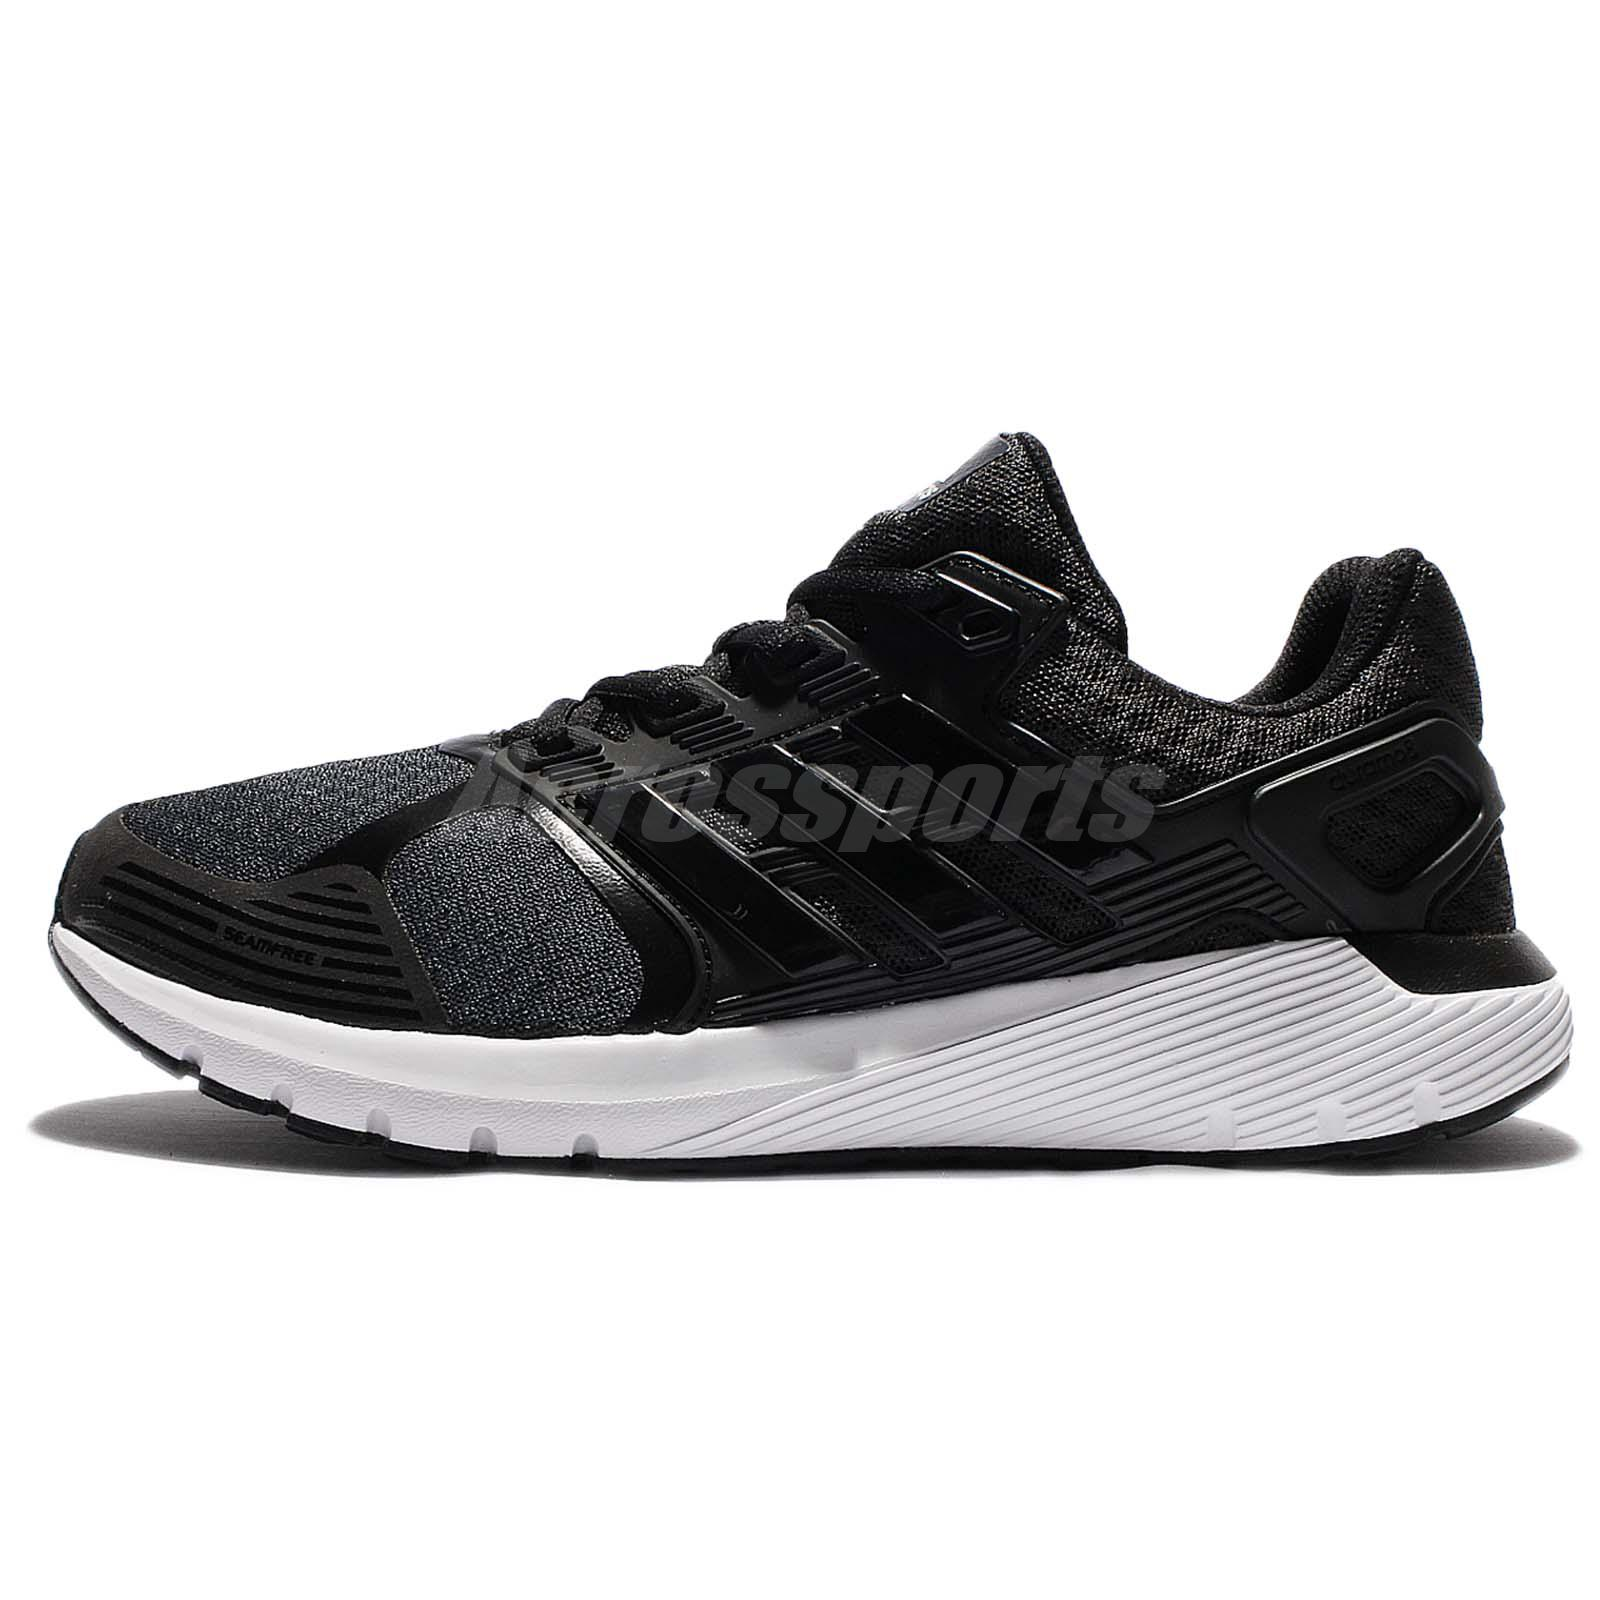 adidas duramo women's running shoes